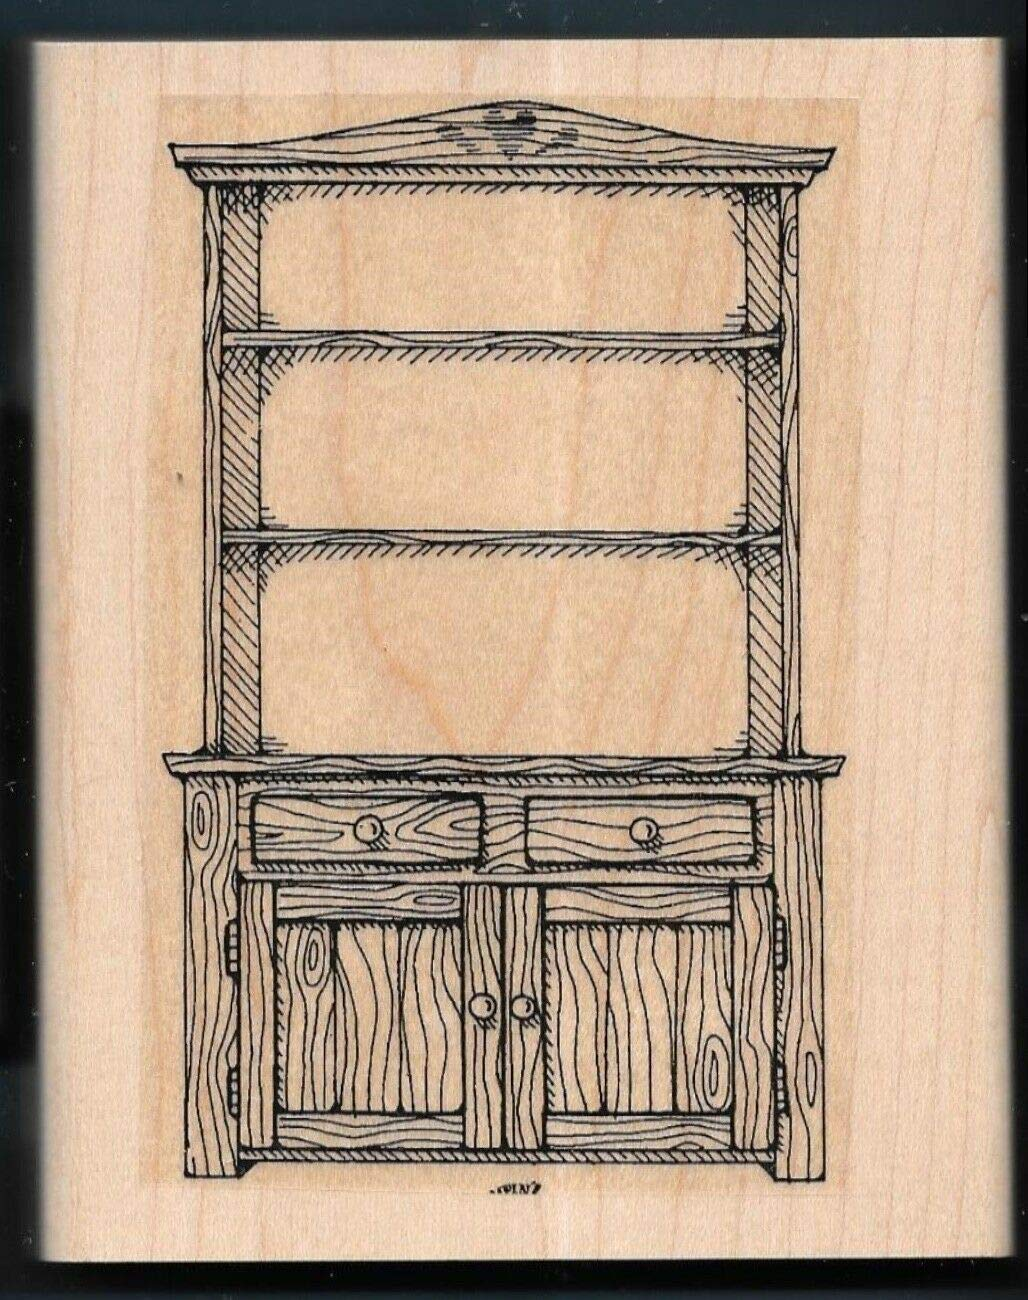 Rubber Stamp Frames Country Cupboard Hutch Dry Sink Cabinet Wood Love Bakes Rubber Stamp by OutletBestSelling